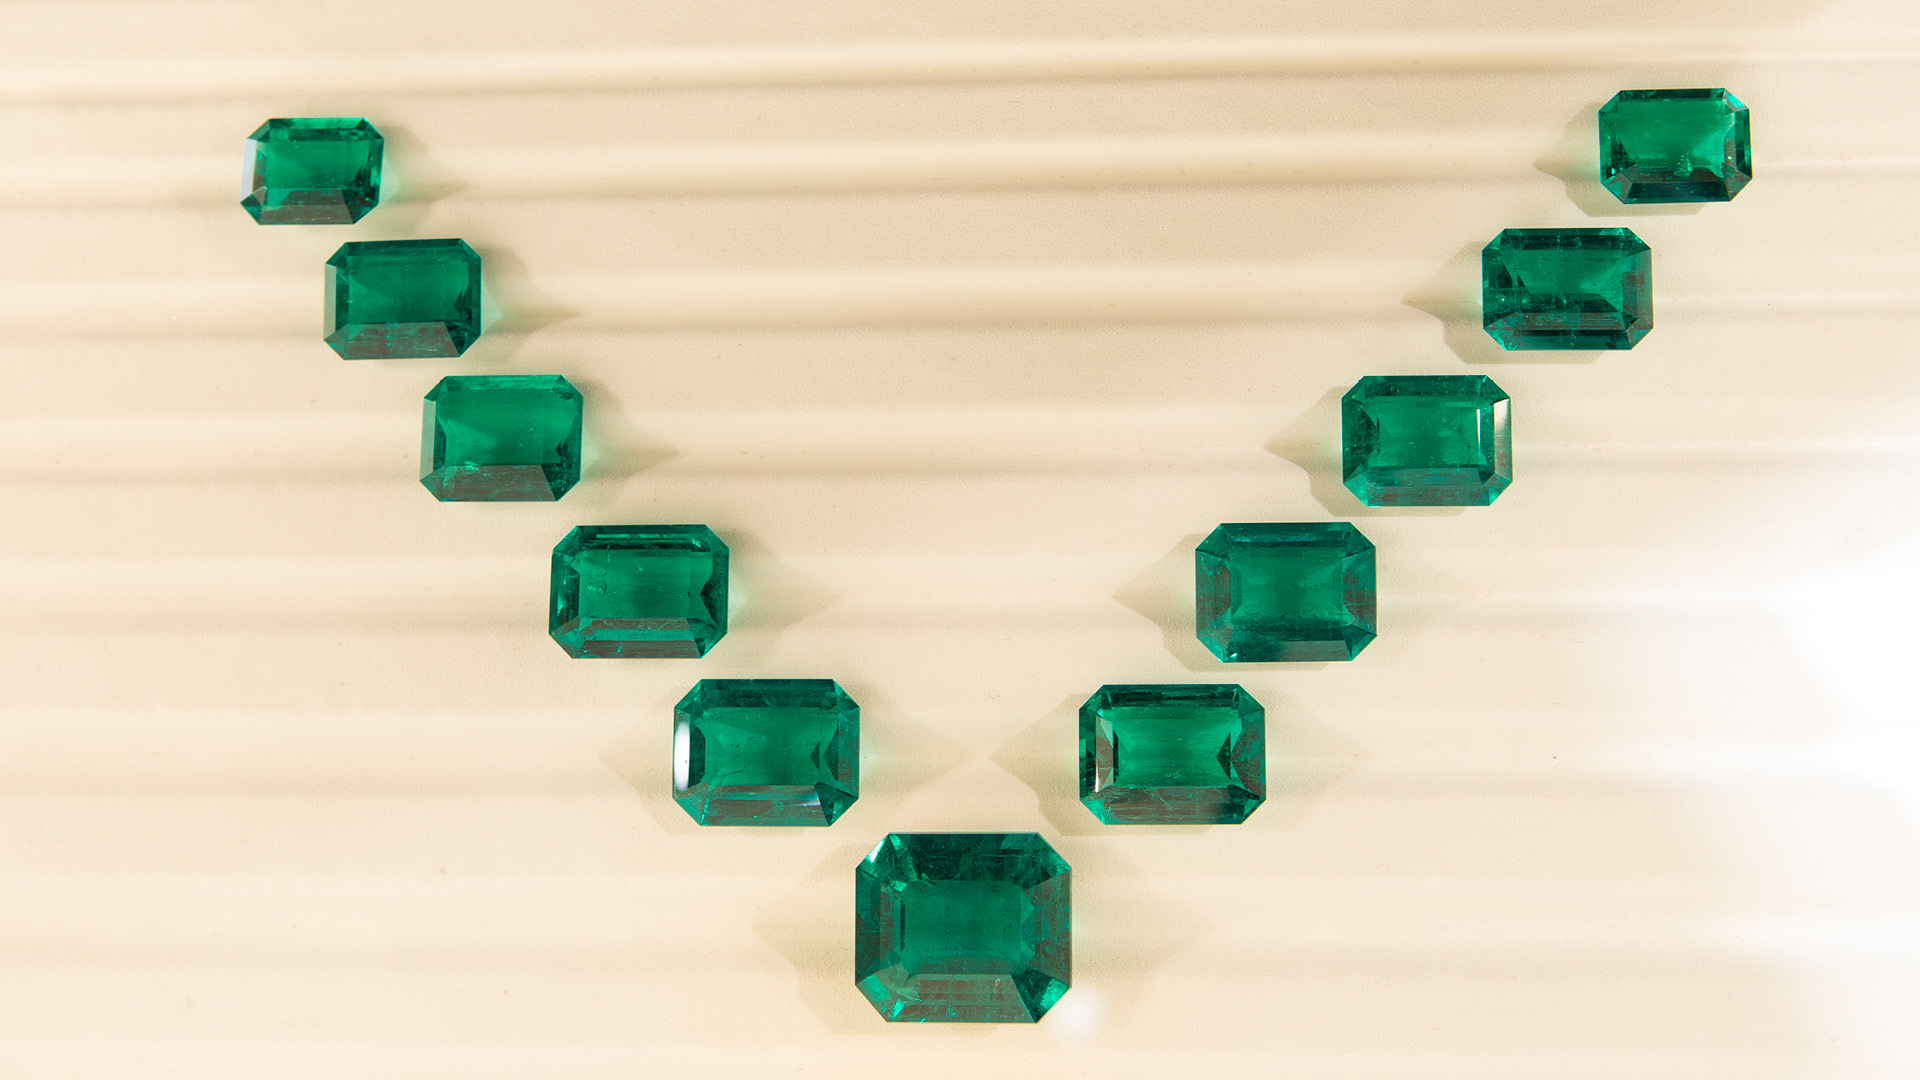 4Gs Trading Corp layout of 11 emerald-cut emeralds – a total of 280 carats